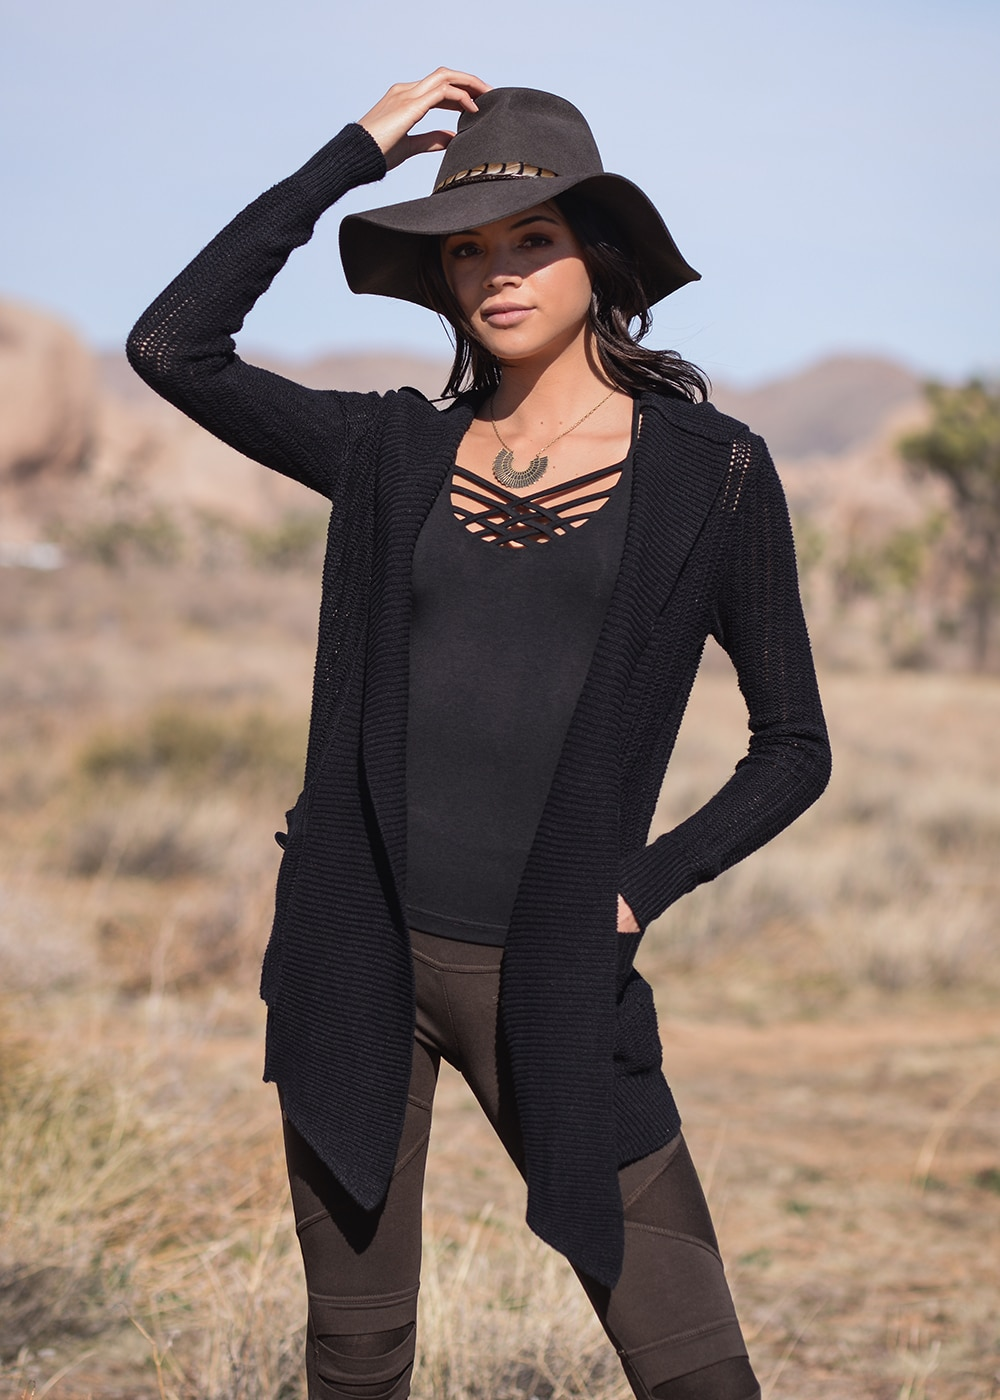 Hemp Knit Avalon Cardigan in Black by Nomads Hemp Wear